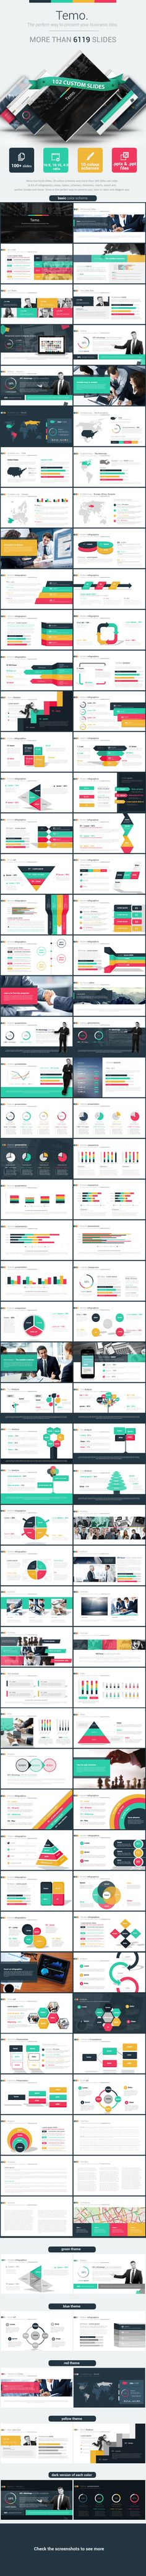 Temo Powerpoint Presentation Template Powerpoint Templates 84